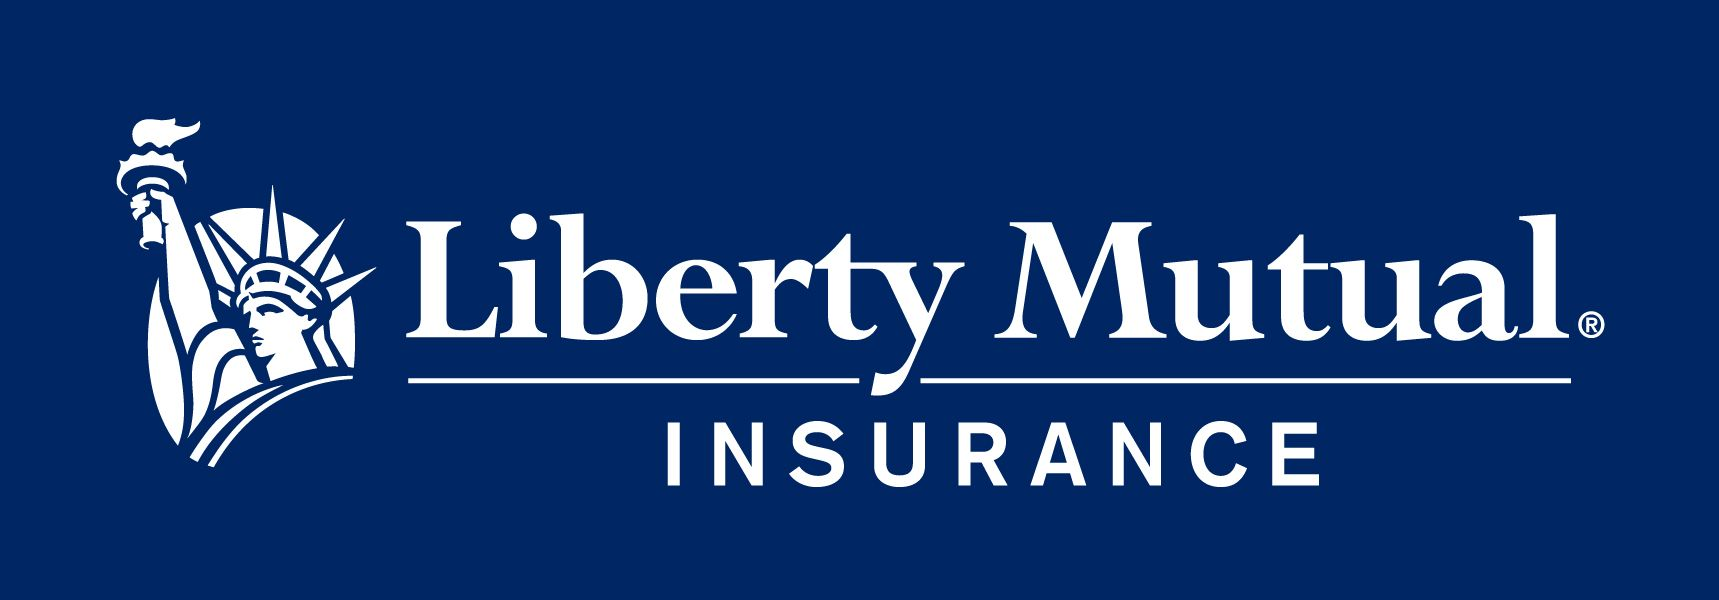 Liberty Mutual Car Insurance Quote Magnificent Image Result For Liberty Mutual Insurance  Branding  Pinterest